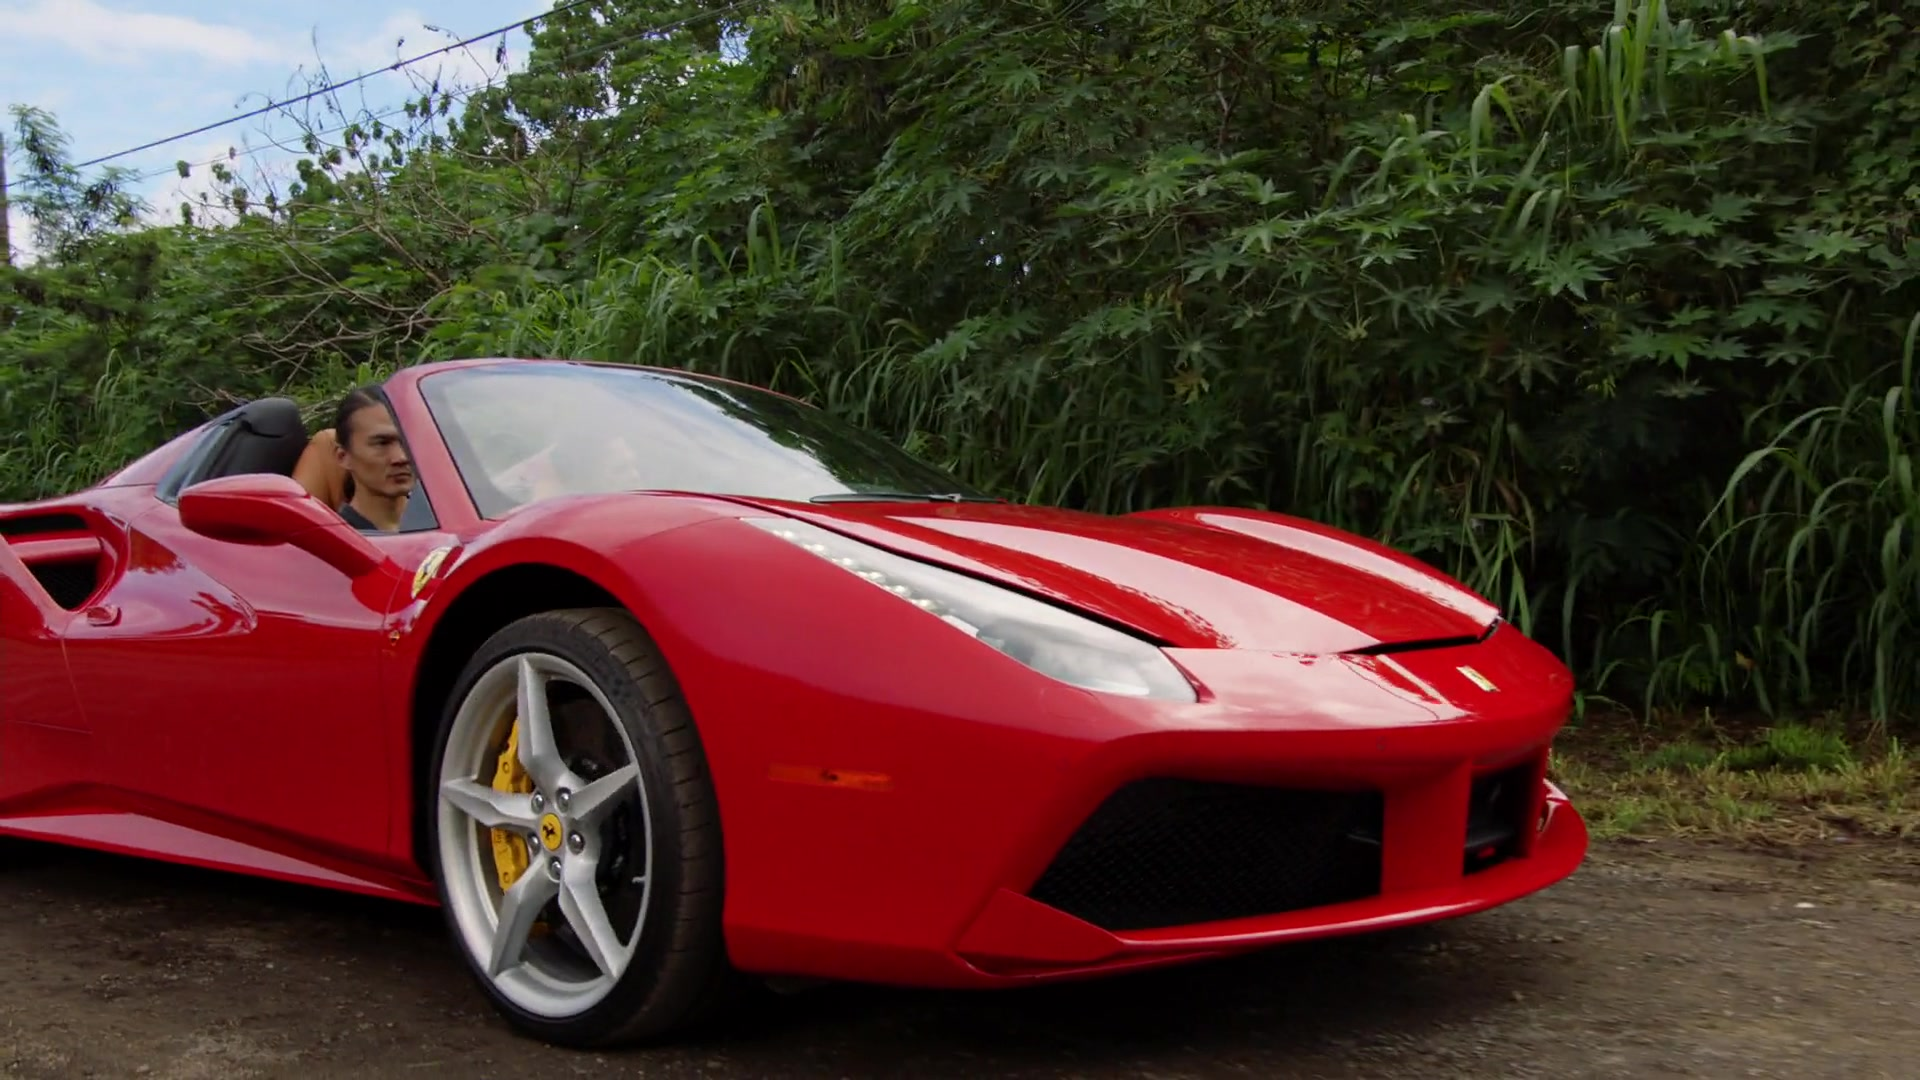 Used Alfa Romeo >> Ferrari 488 Spider Red Sports Car Used by Jay Hernandez in Magnum P.I. Season 1 Episode 8: The ...